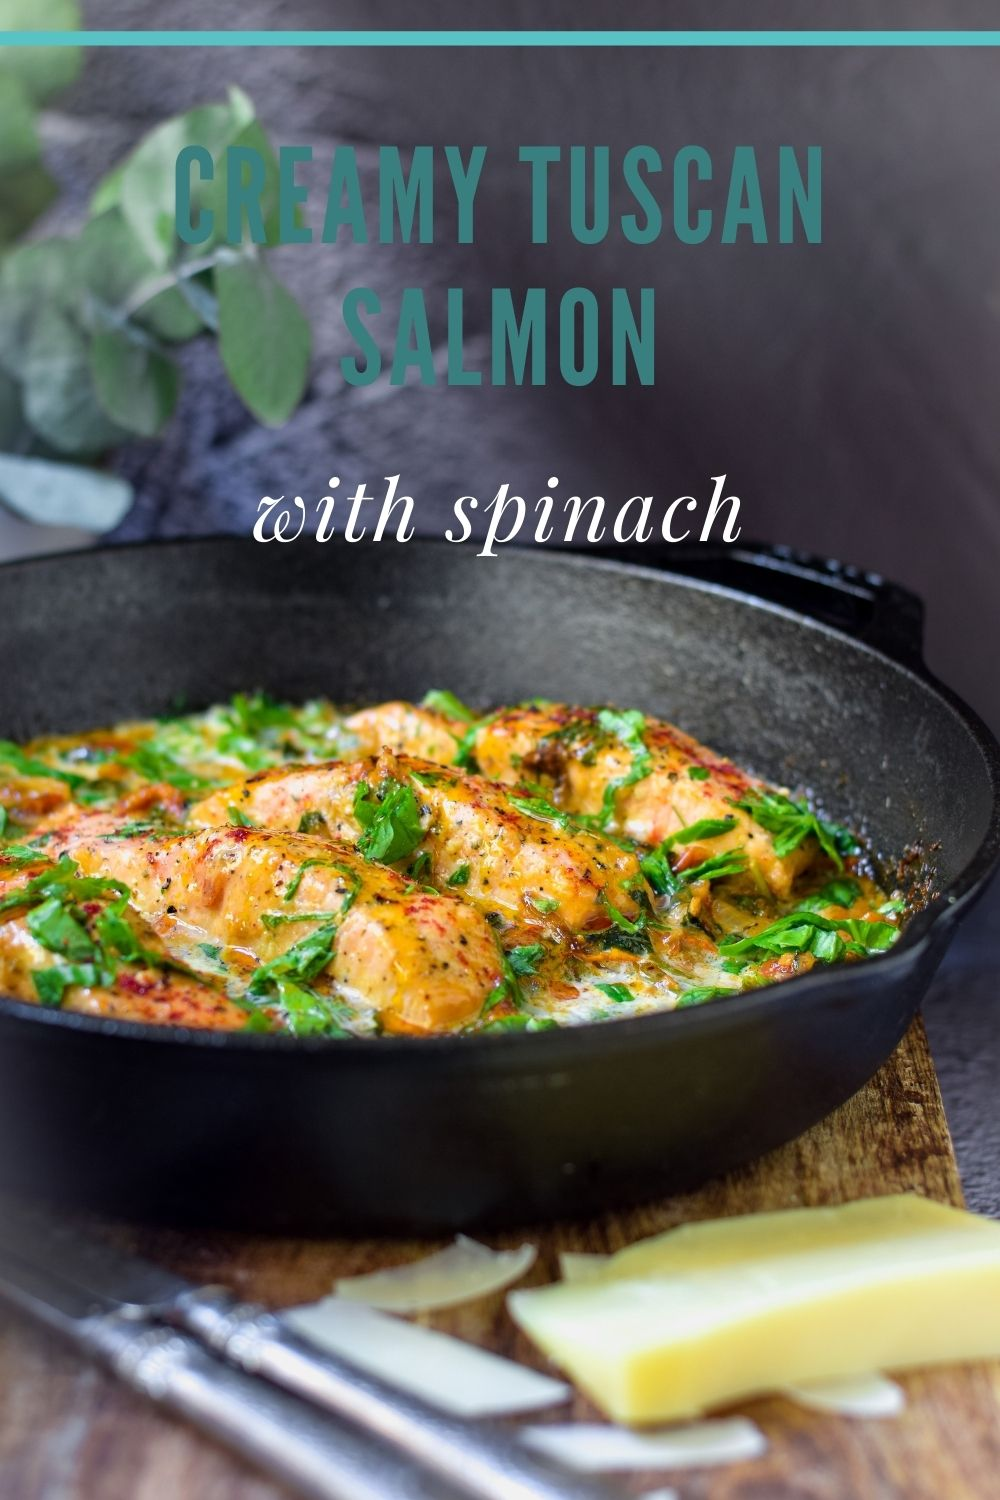 Creamy Tuscan Salmon with Spinach in a black pan